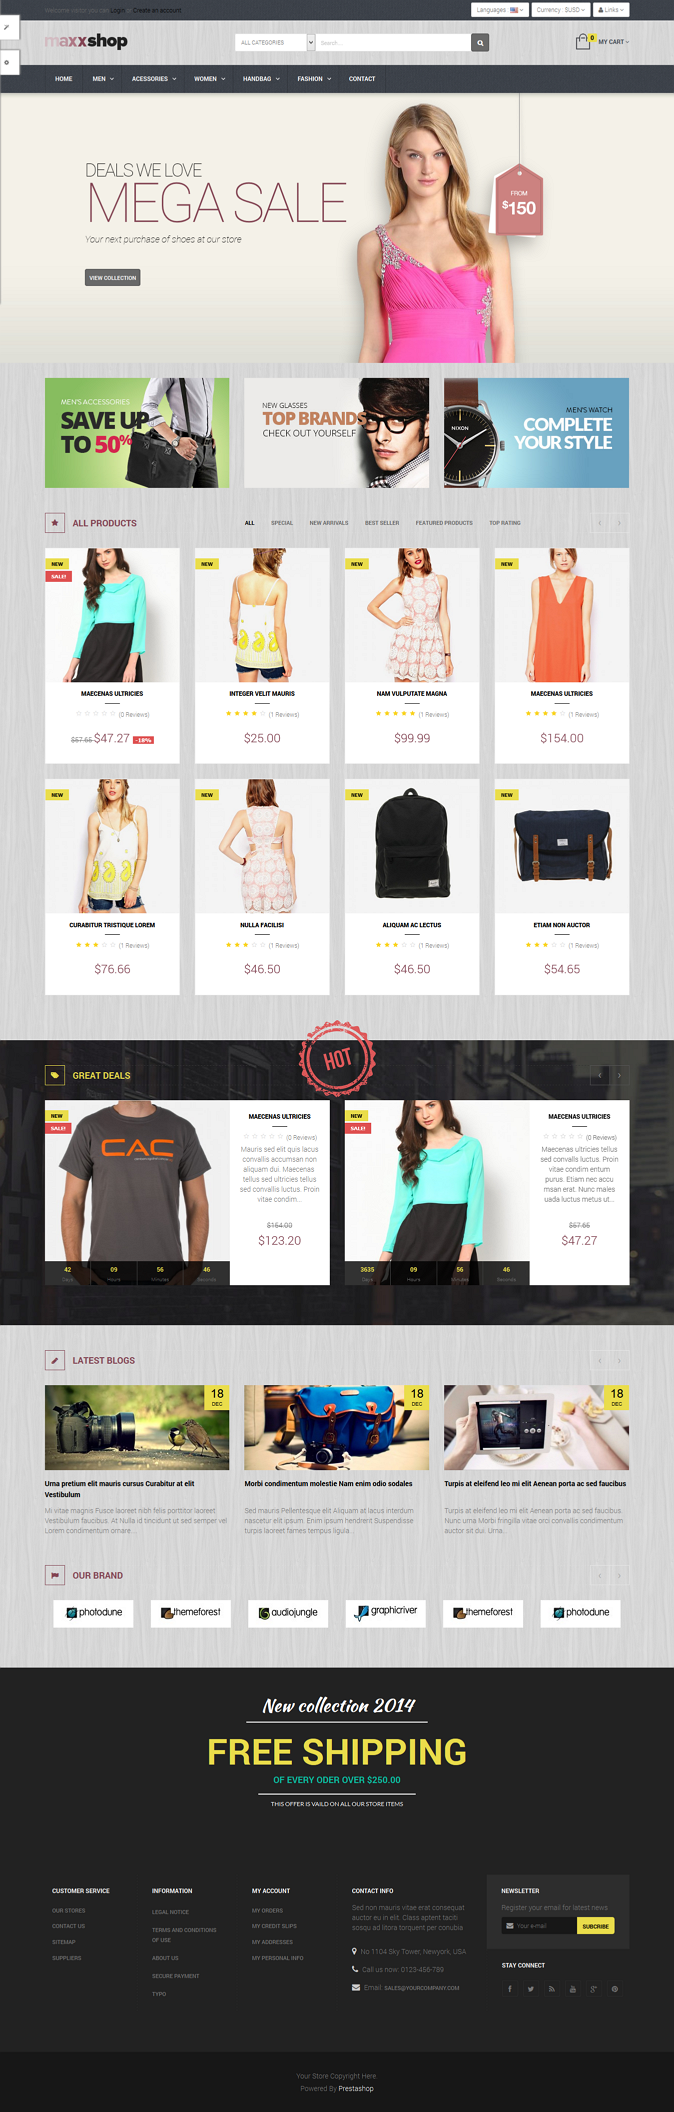 Pts Maxxshop is Great Prestashop 1.6 Template suitable for Handmade Store, Fashion products Shop ...